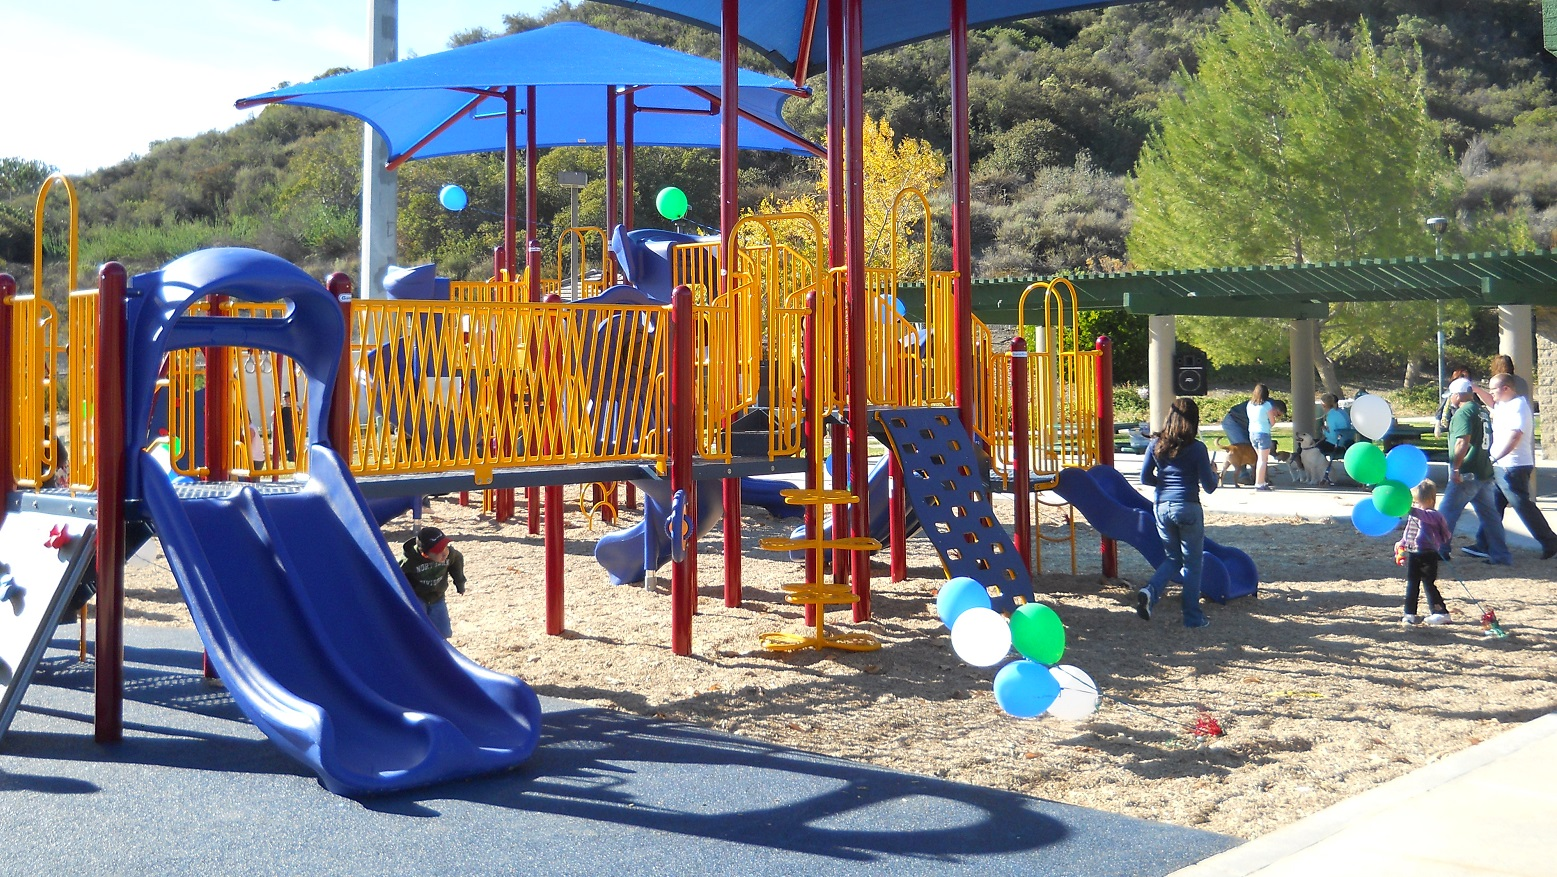 building better communities   Commercial Recreation Design & Installation   LEARN MORE